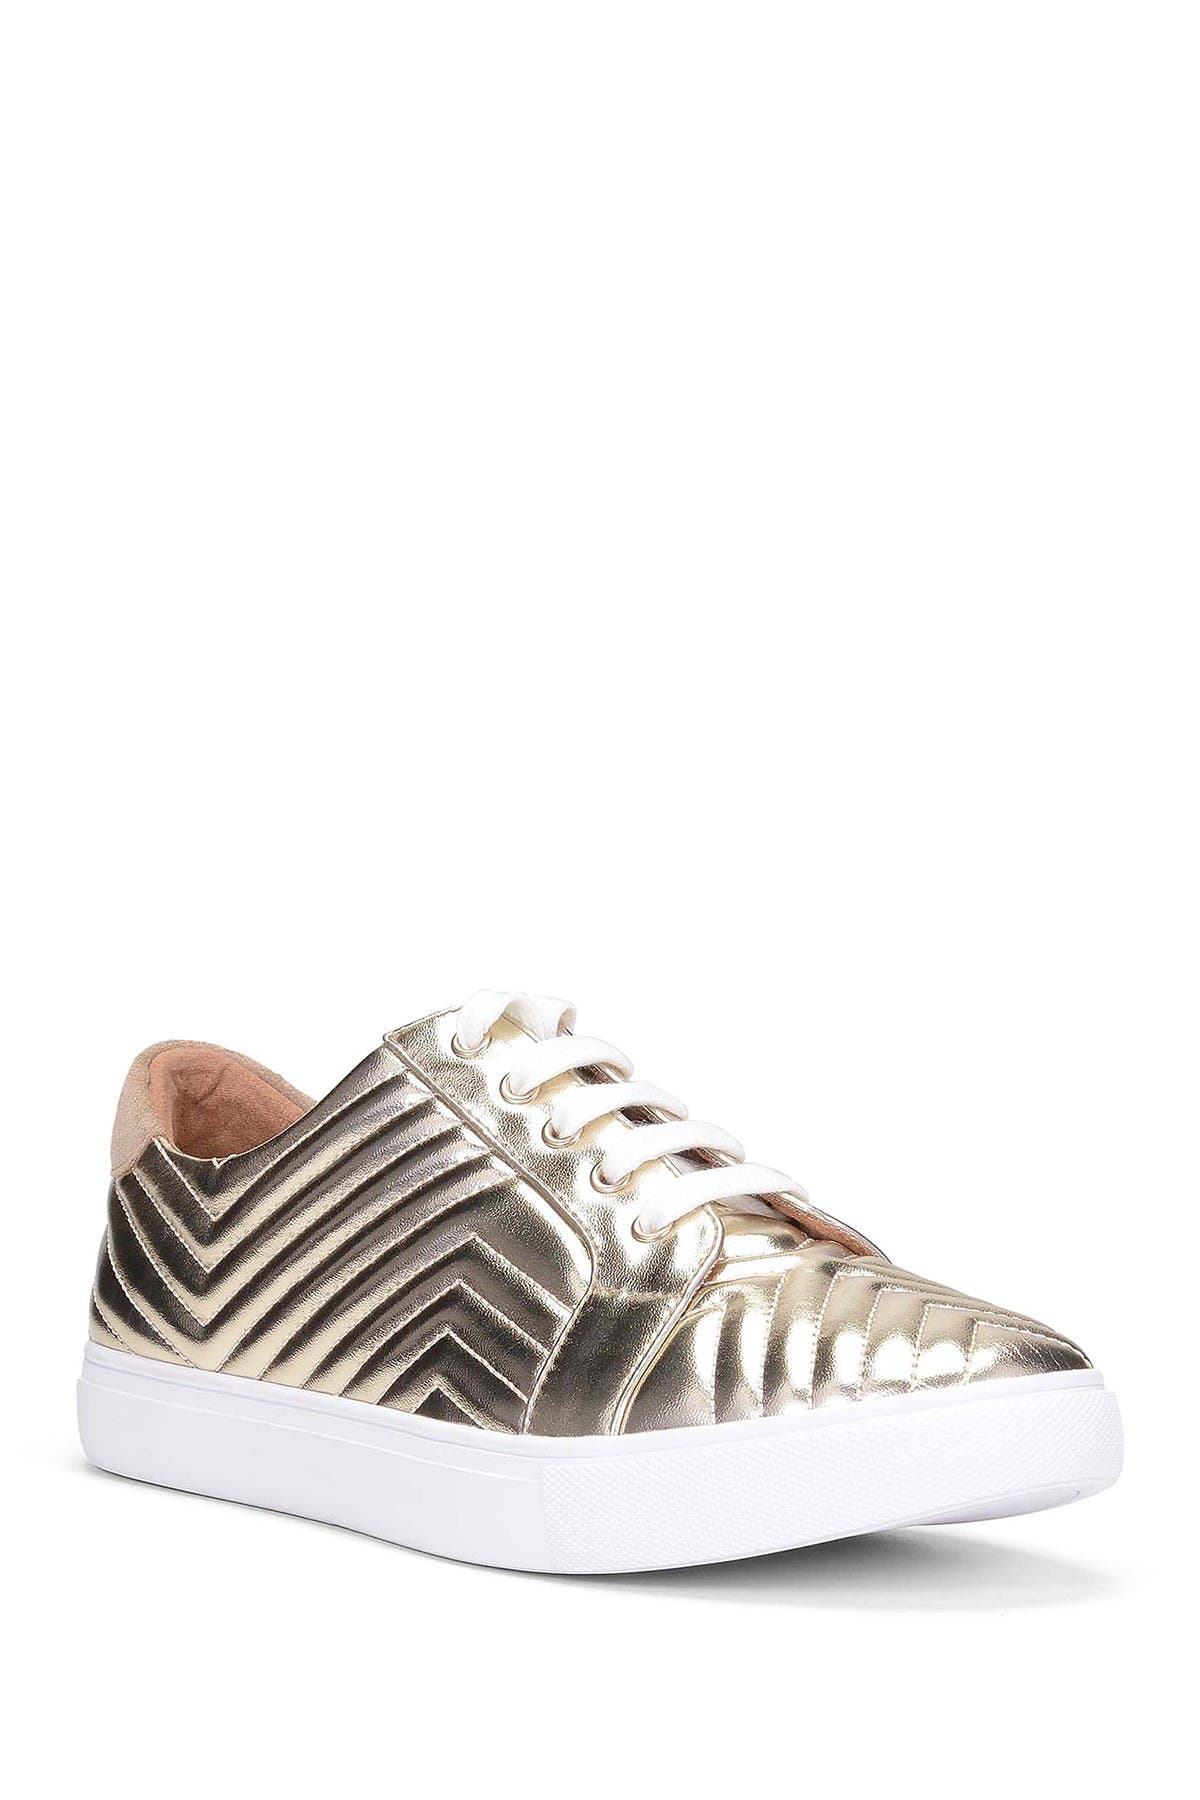 Image of Donald Pliner SOFII Quilted Leather Sneaker